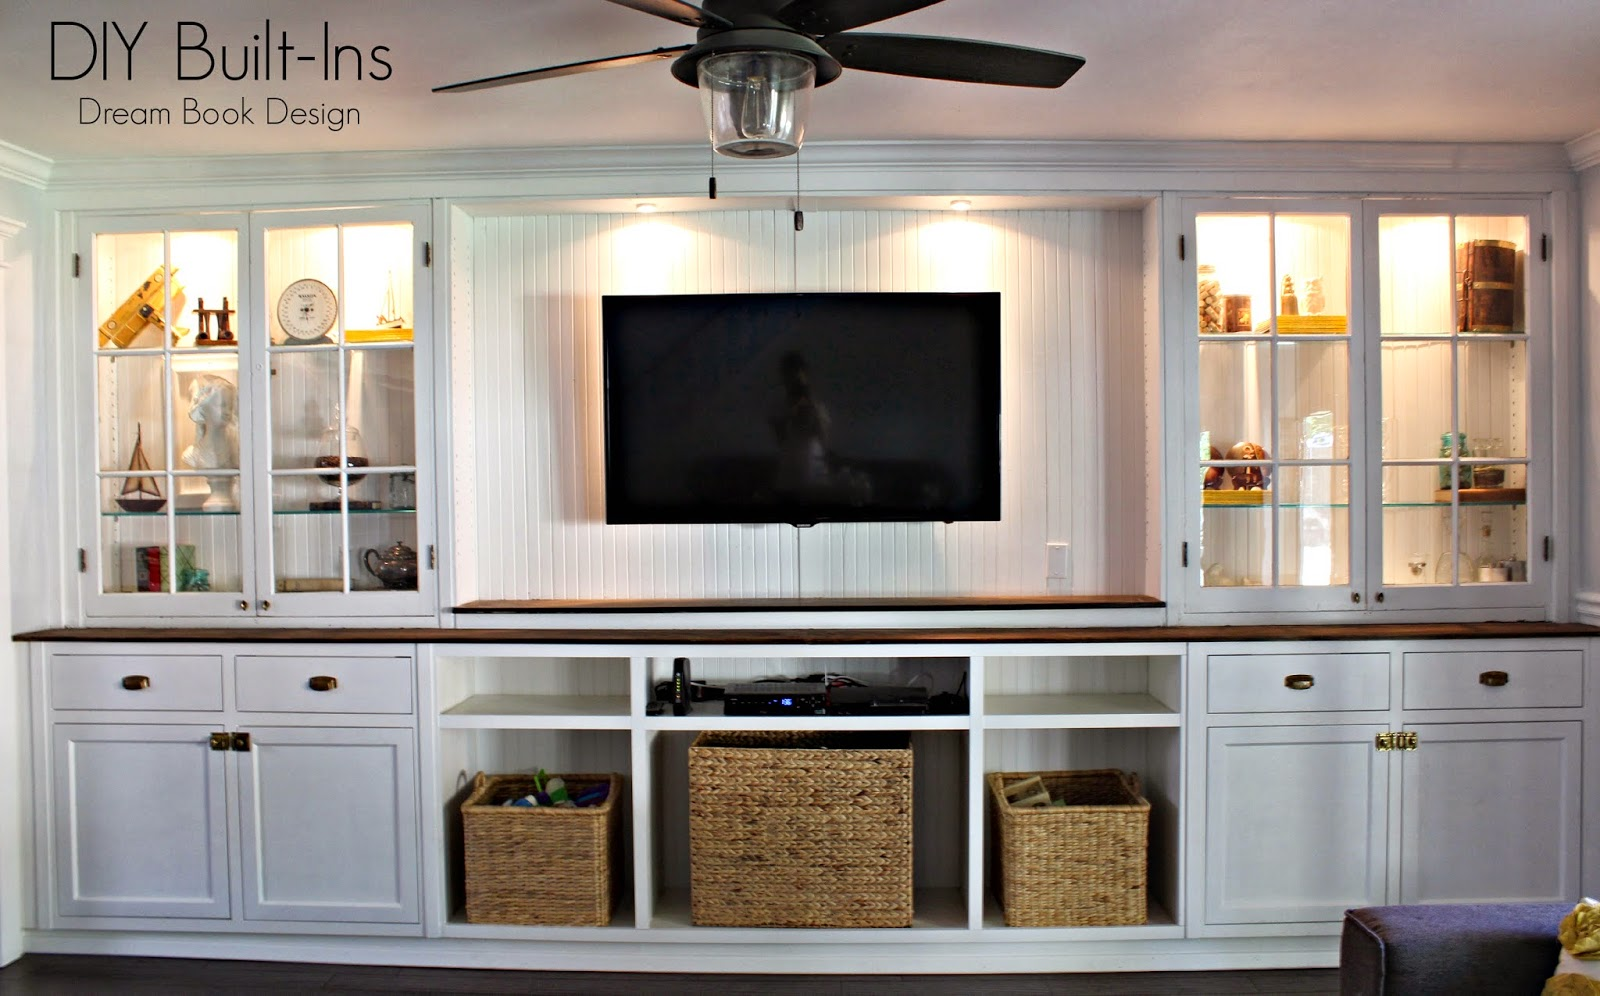 Diy Built In Cabinets PDF Woodworking